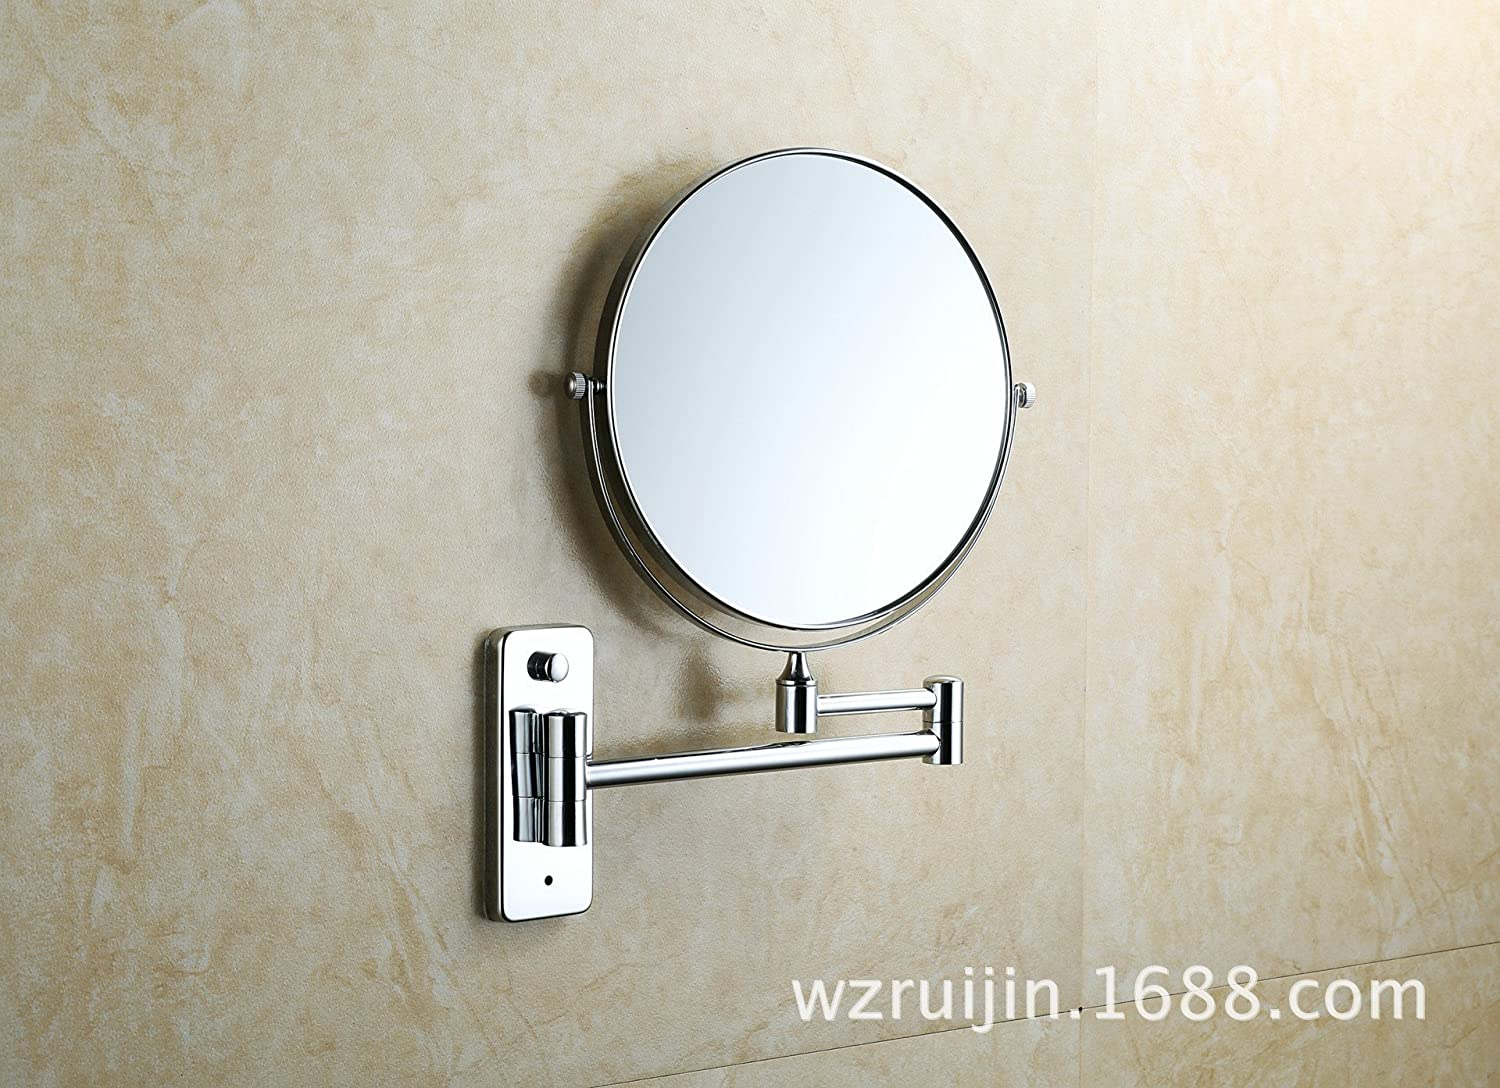 on sale Vanity Mirrors Wall mount bathroom mirrors beauty